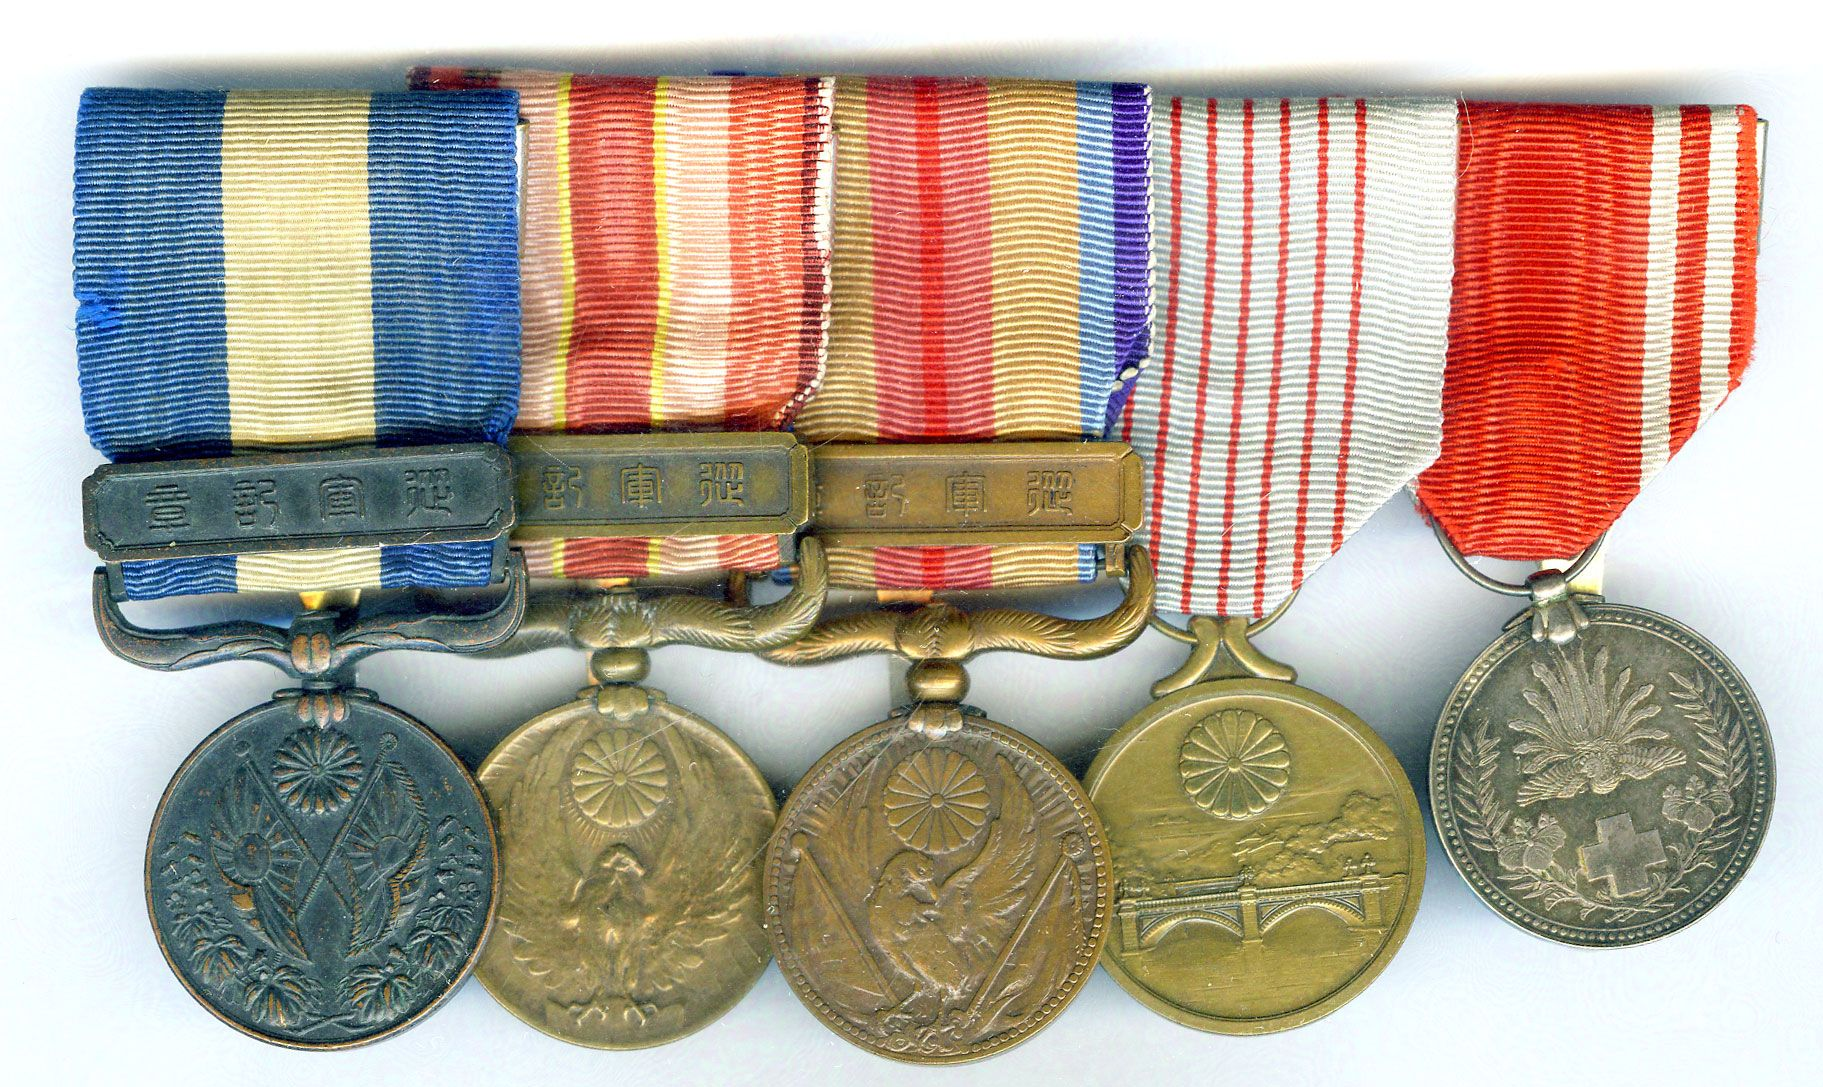 Japanese military medals       :: Liverpool Medals Ltd